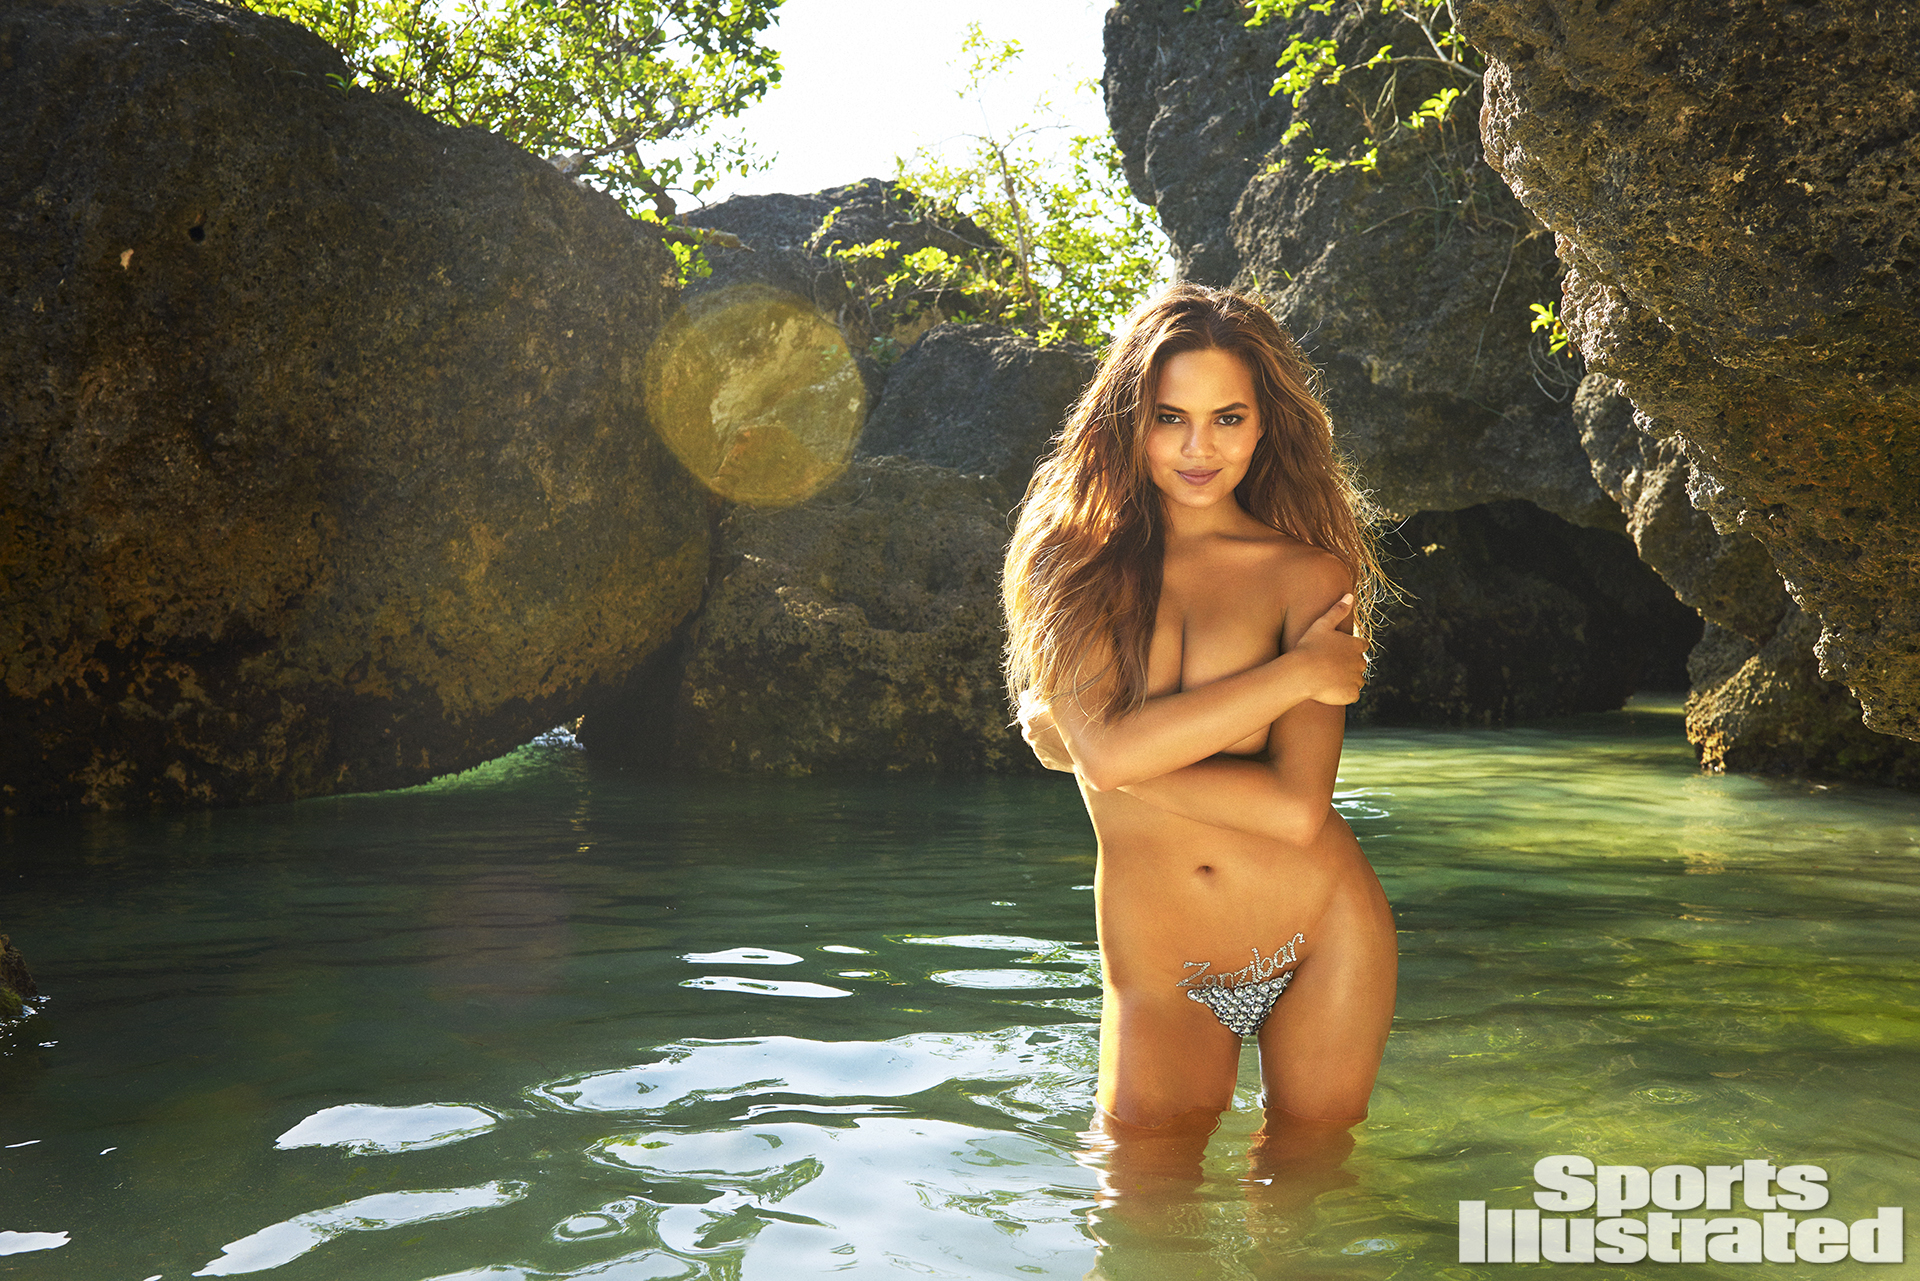 Sex Chrissy Teigen nudes (43 photos), Tits, Fappening, Instagram, swimsuit 2018